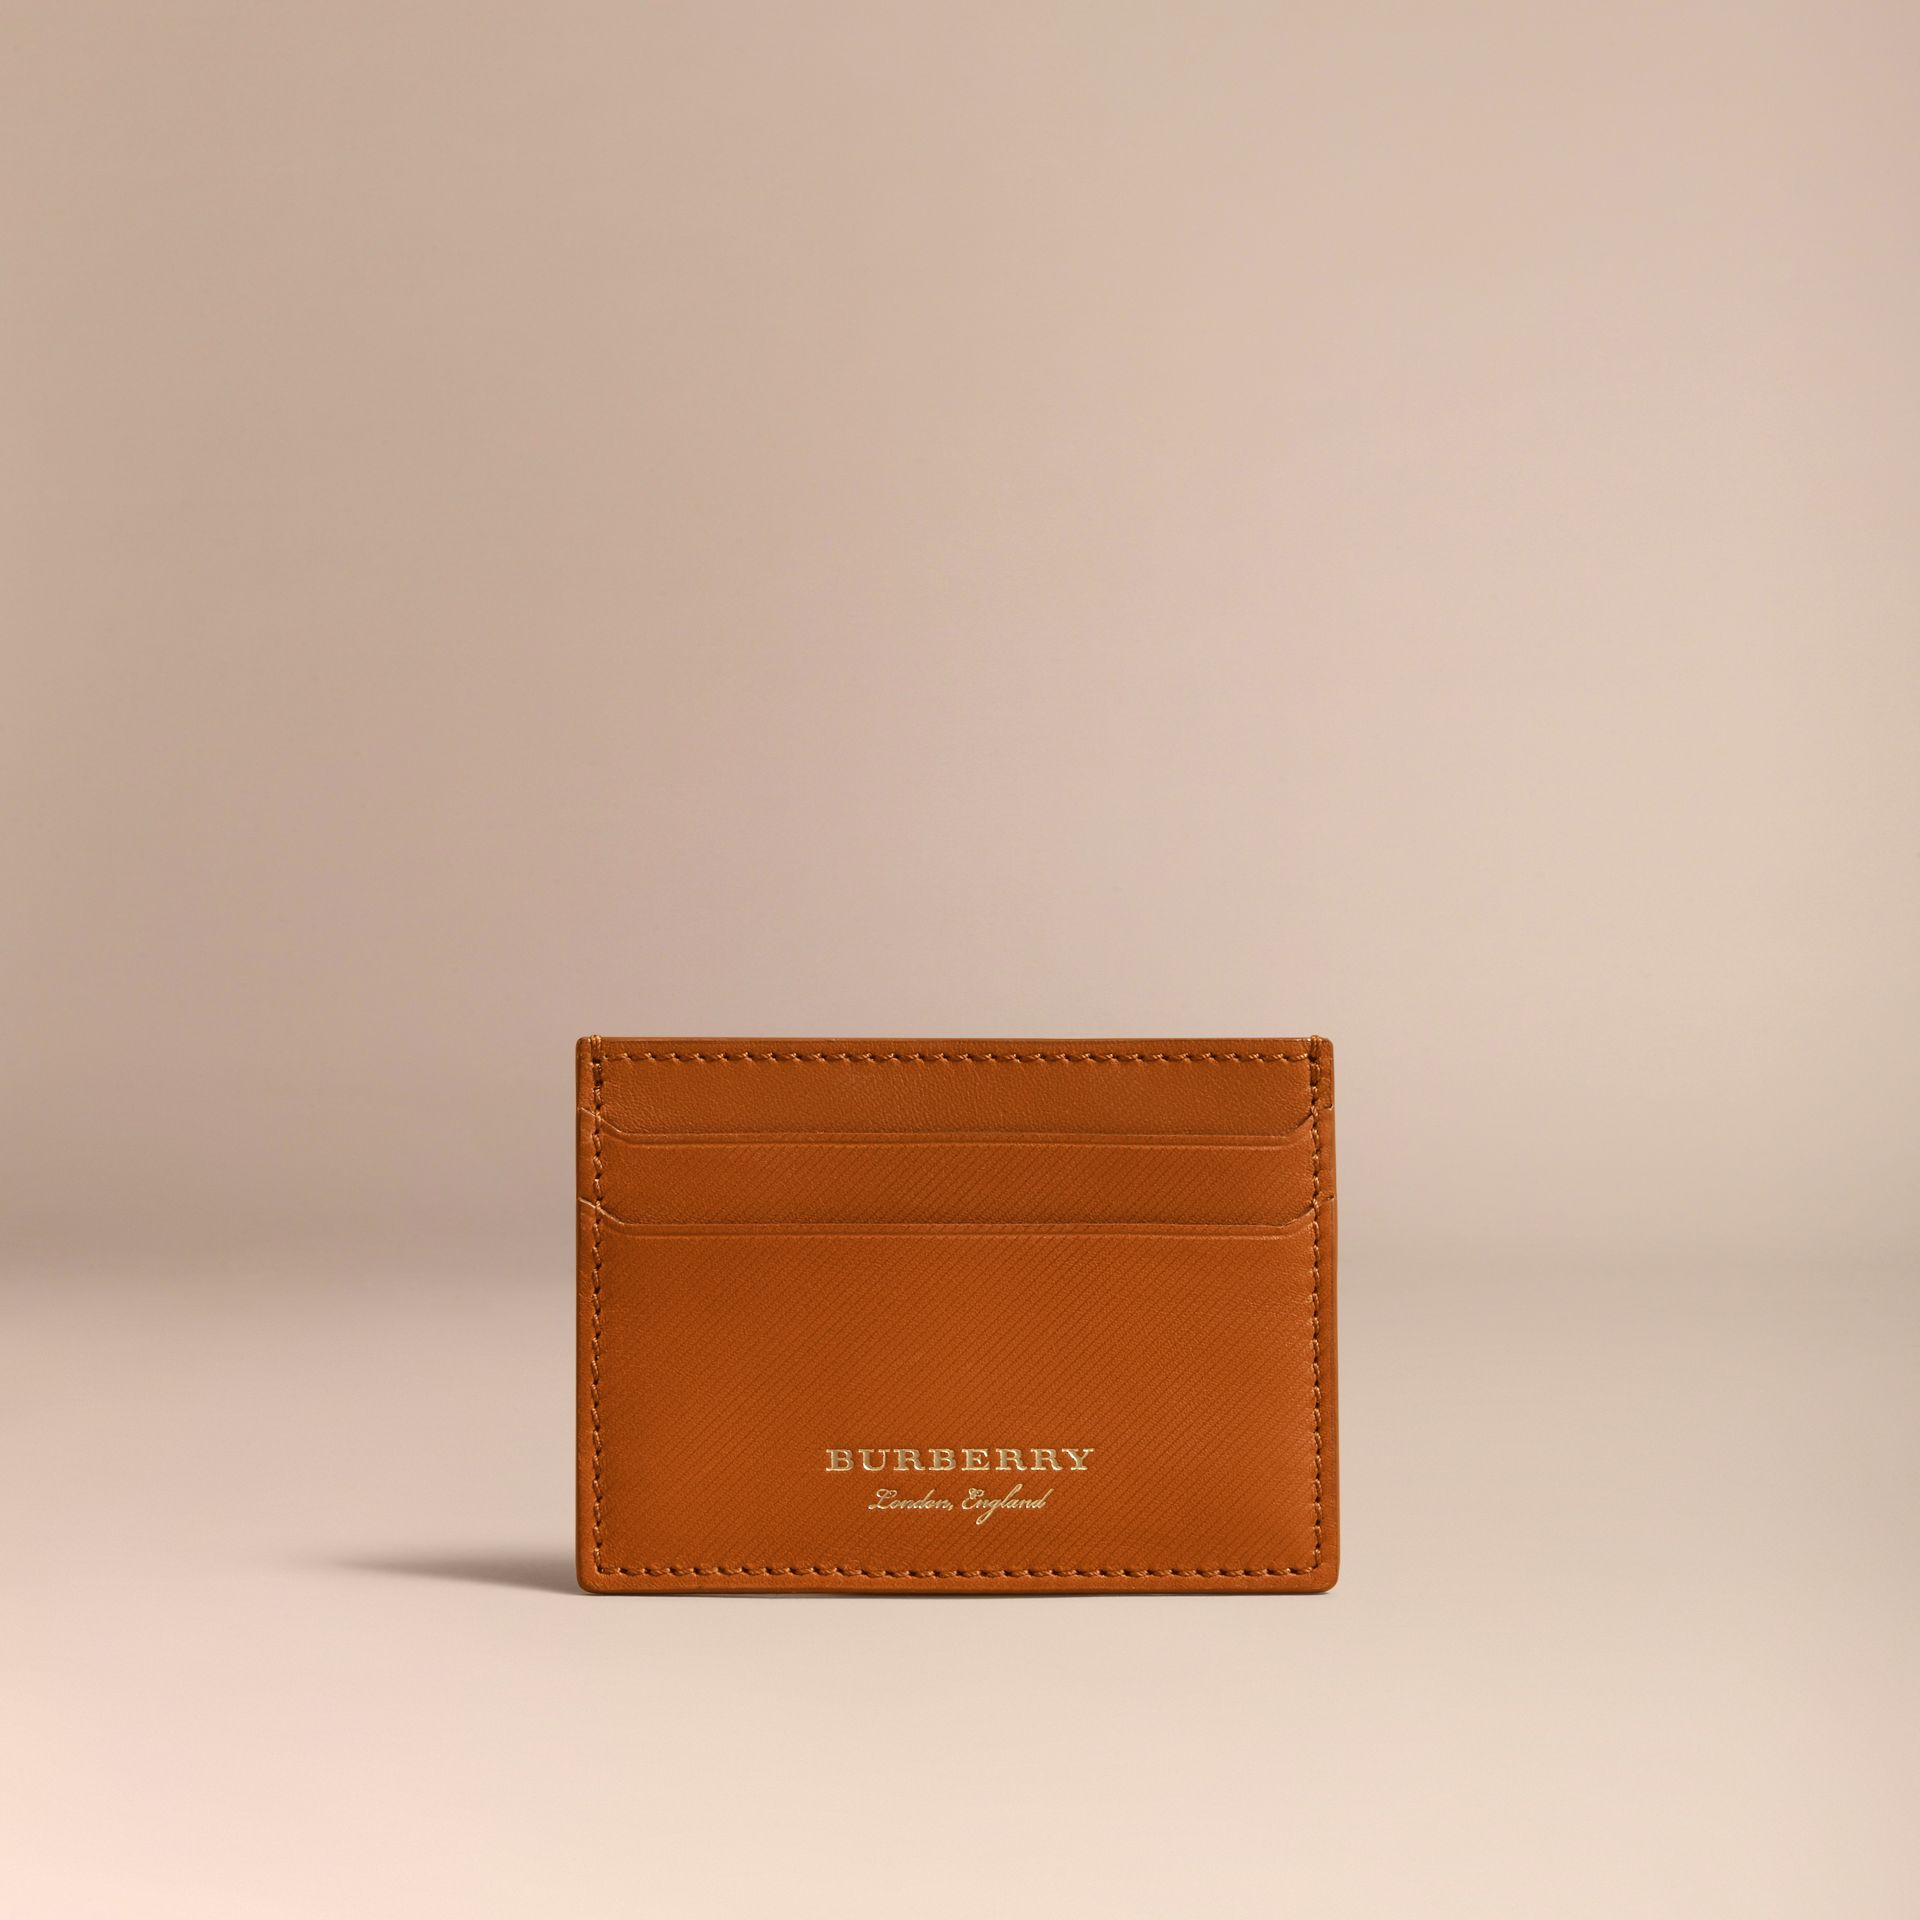 Trench Leather Card Case in Tan - Men | Burberry Singapore - gallery image 6